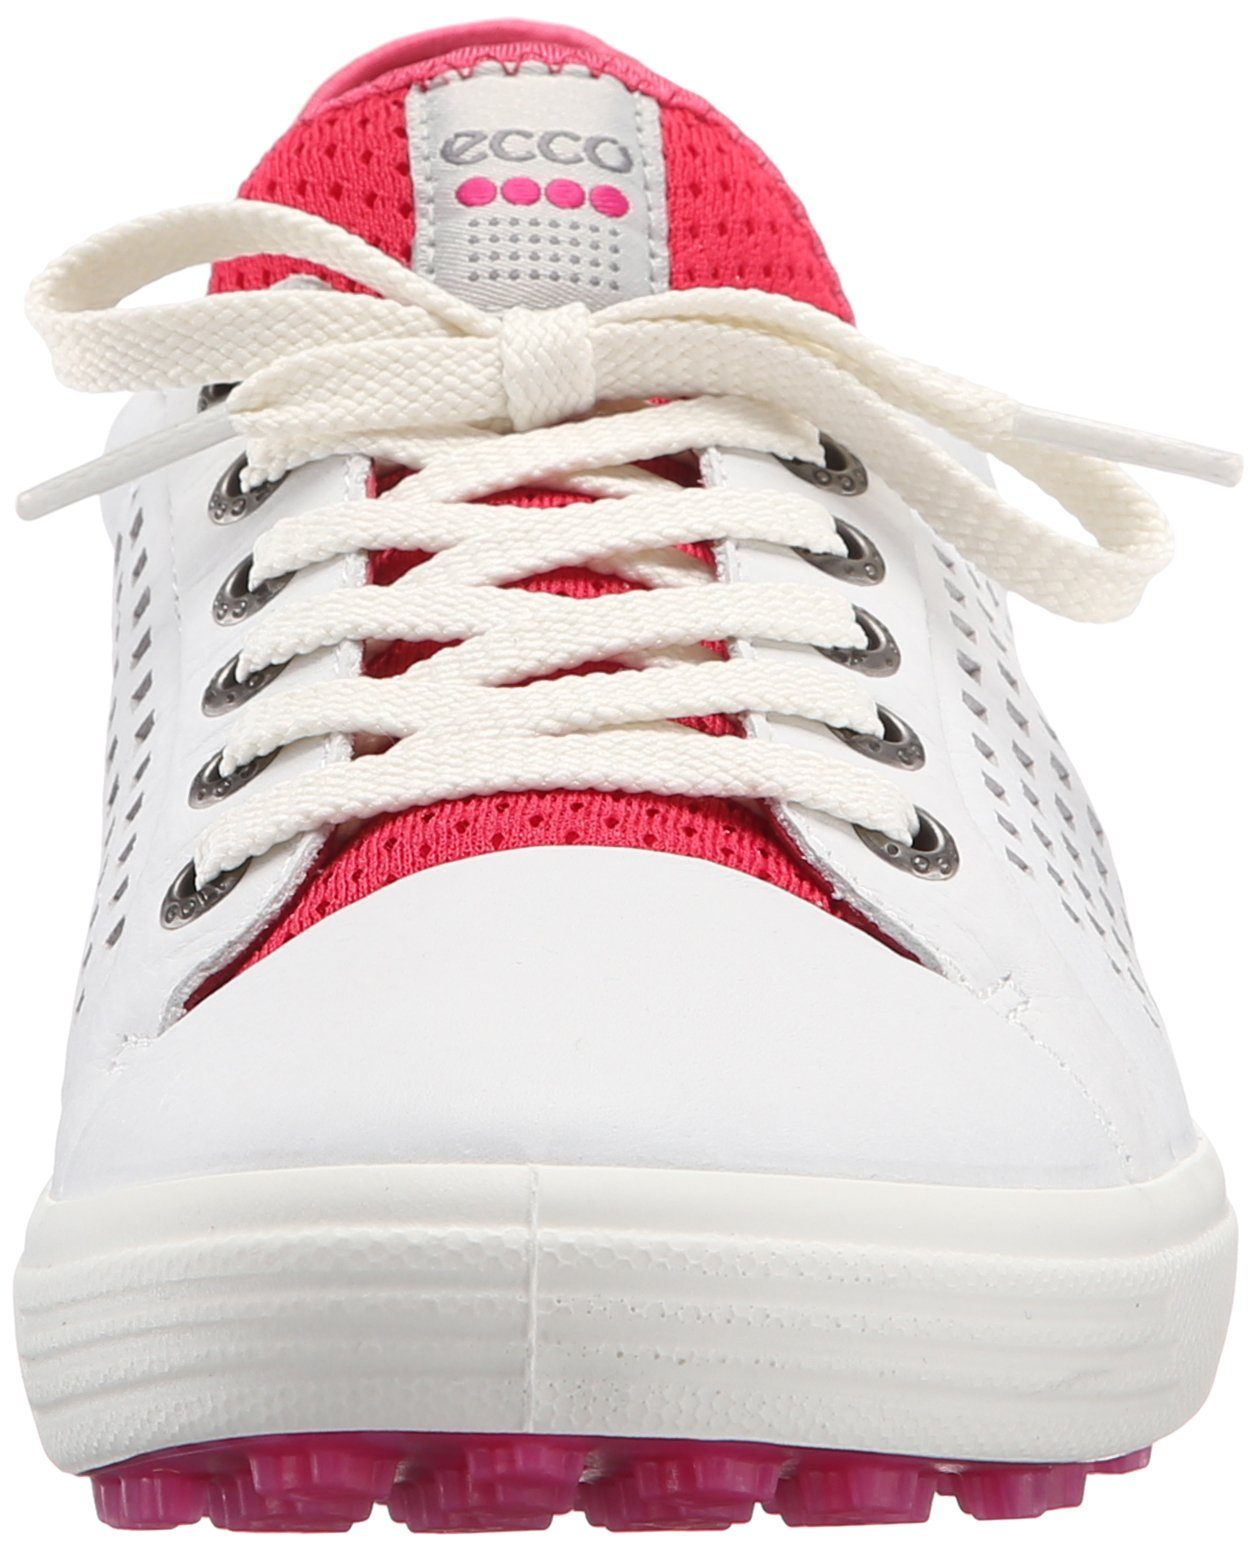 ECCO Women's Summer Hybrid Golf Shoe, White/Raspberry, 41 EU/10-10.5 M US by ECCO (Image #4)